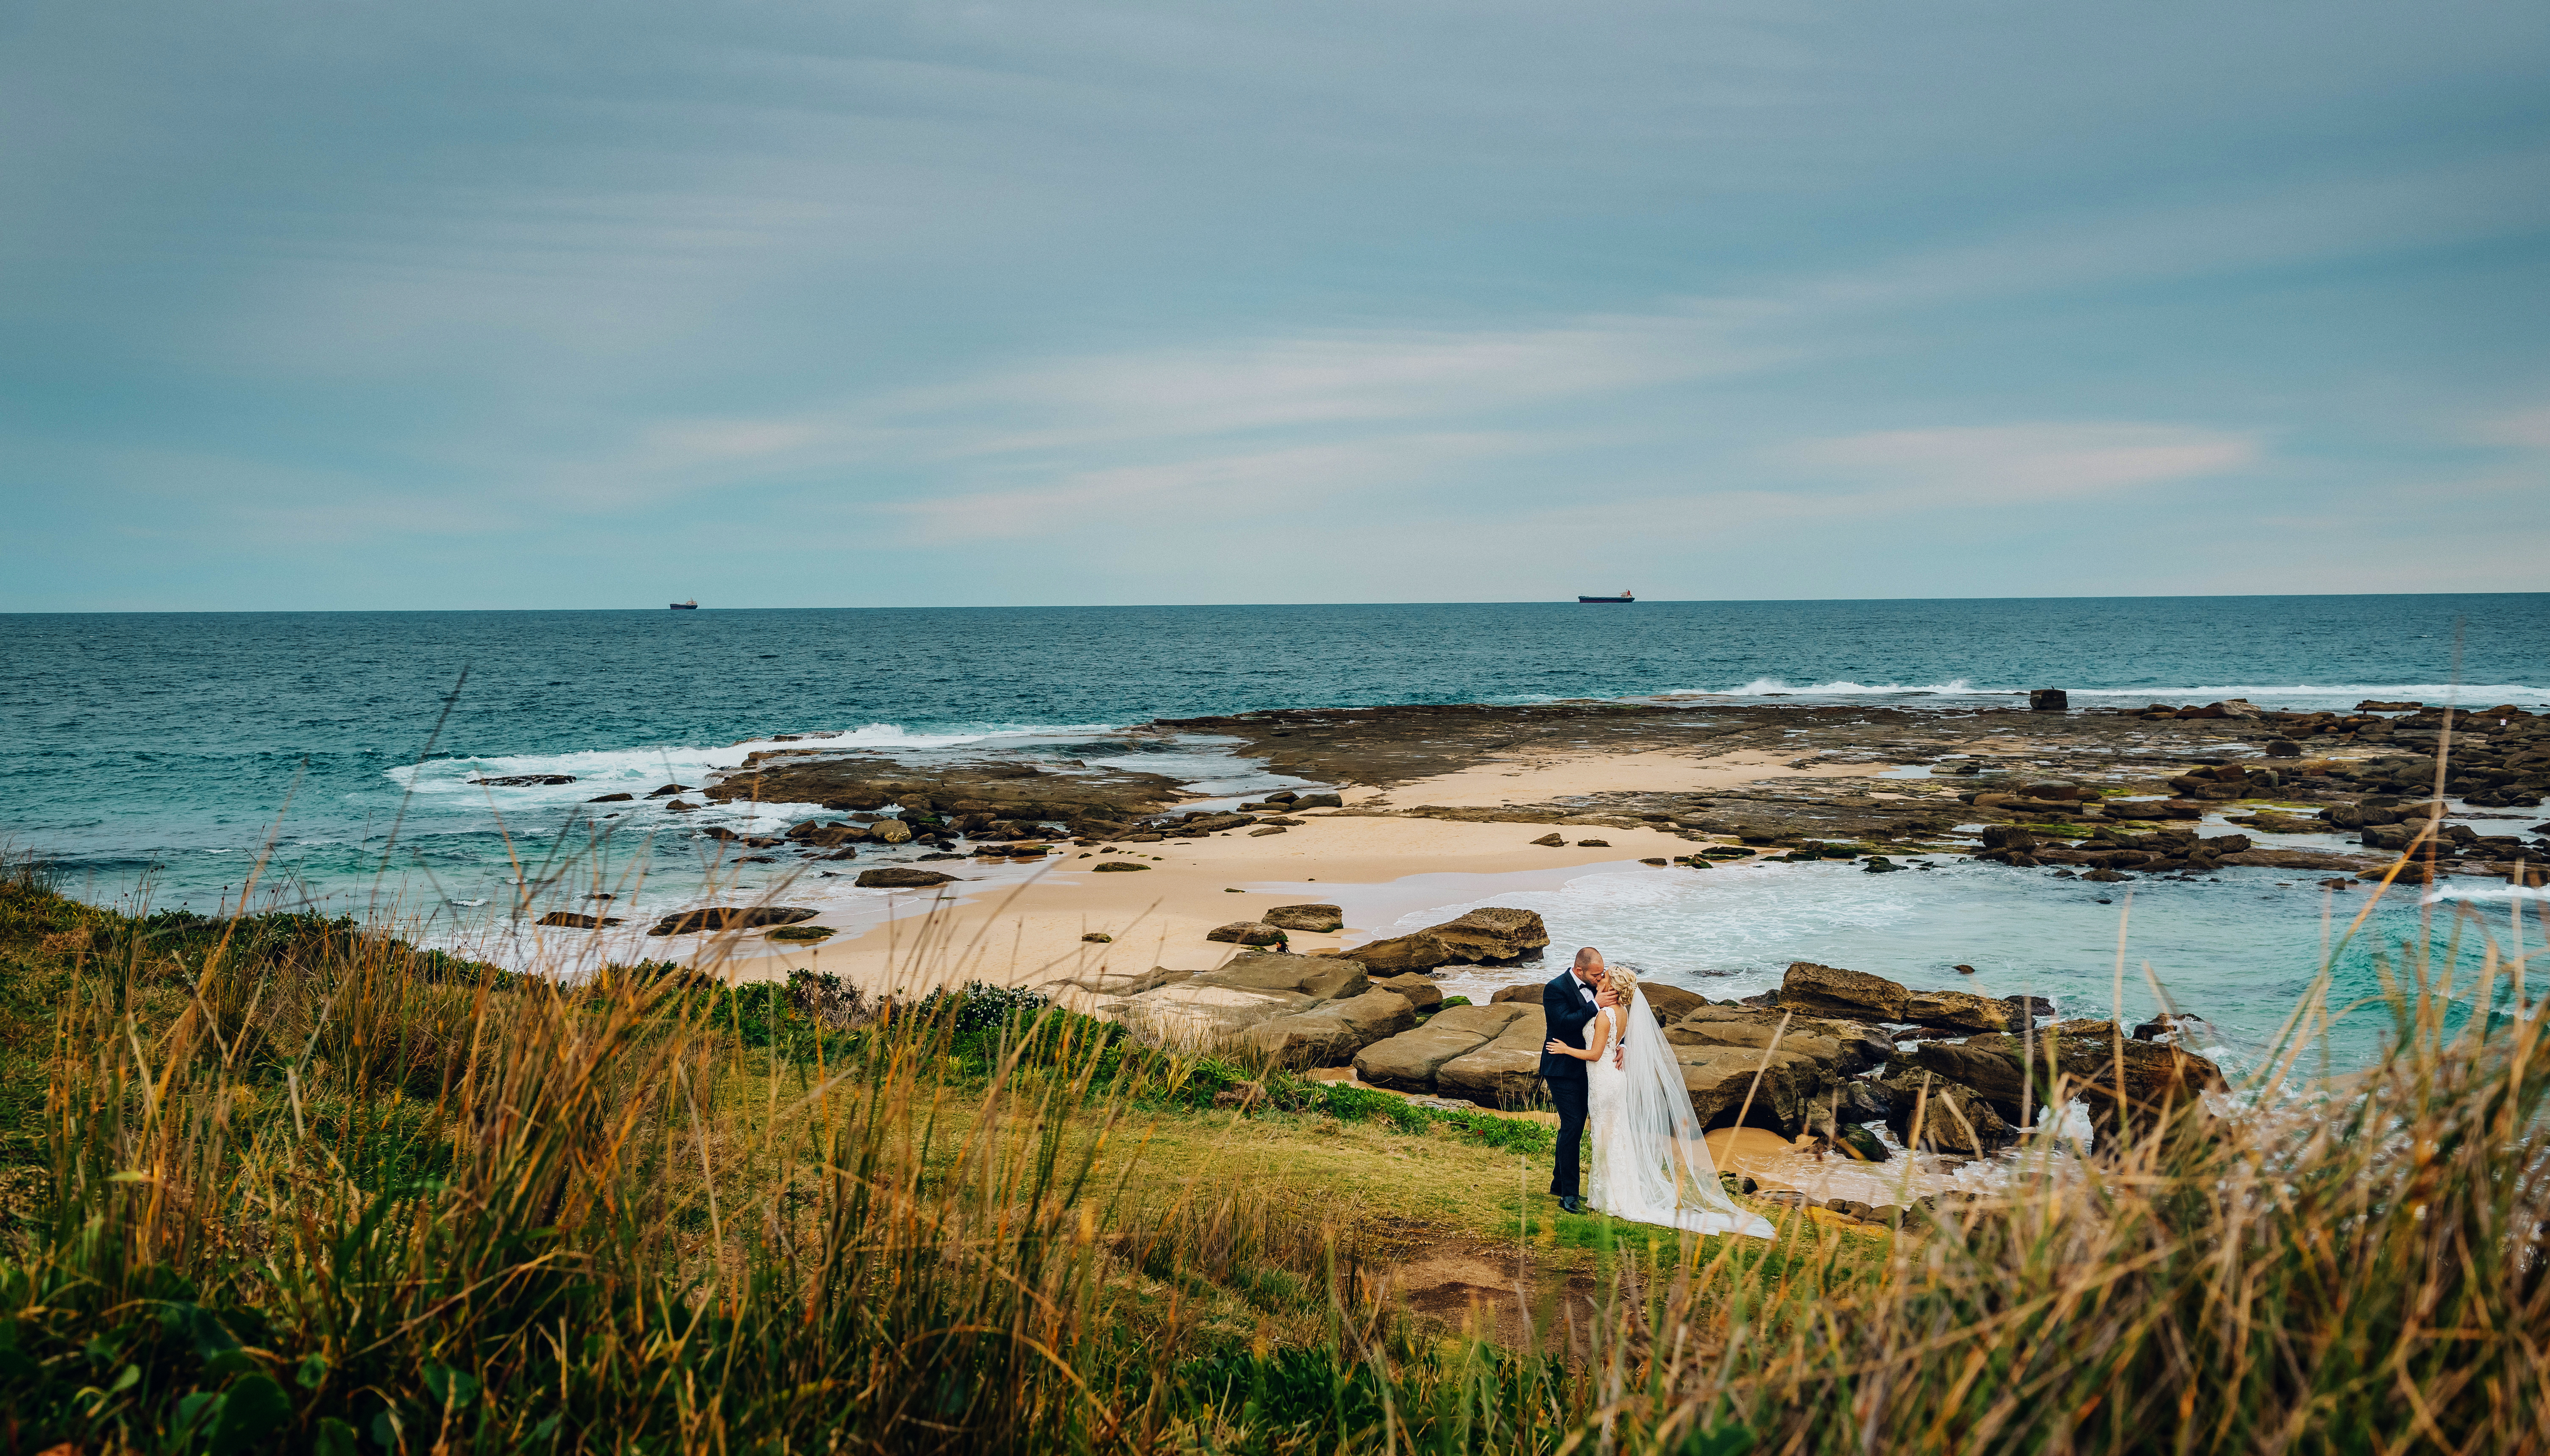 Soldiers Beach Wedding Photography Central Coast Wedding Photographer